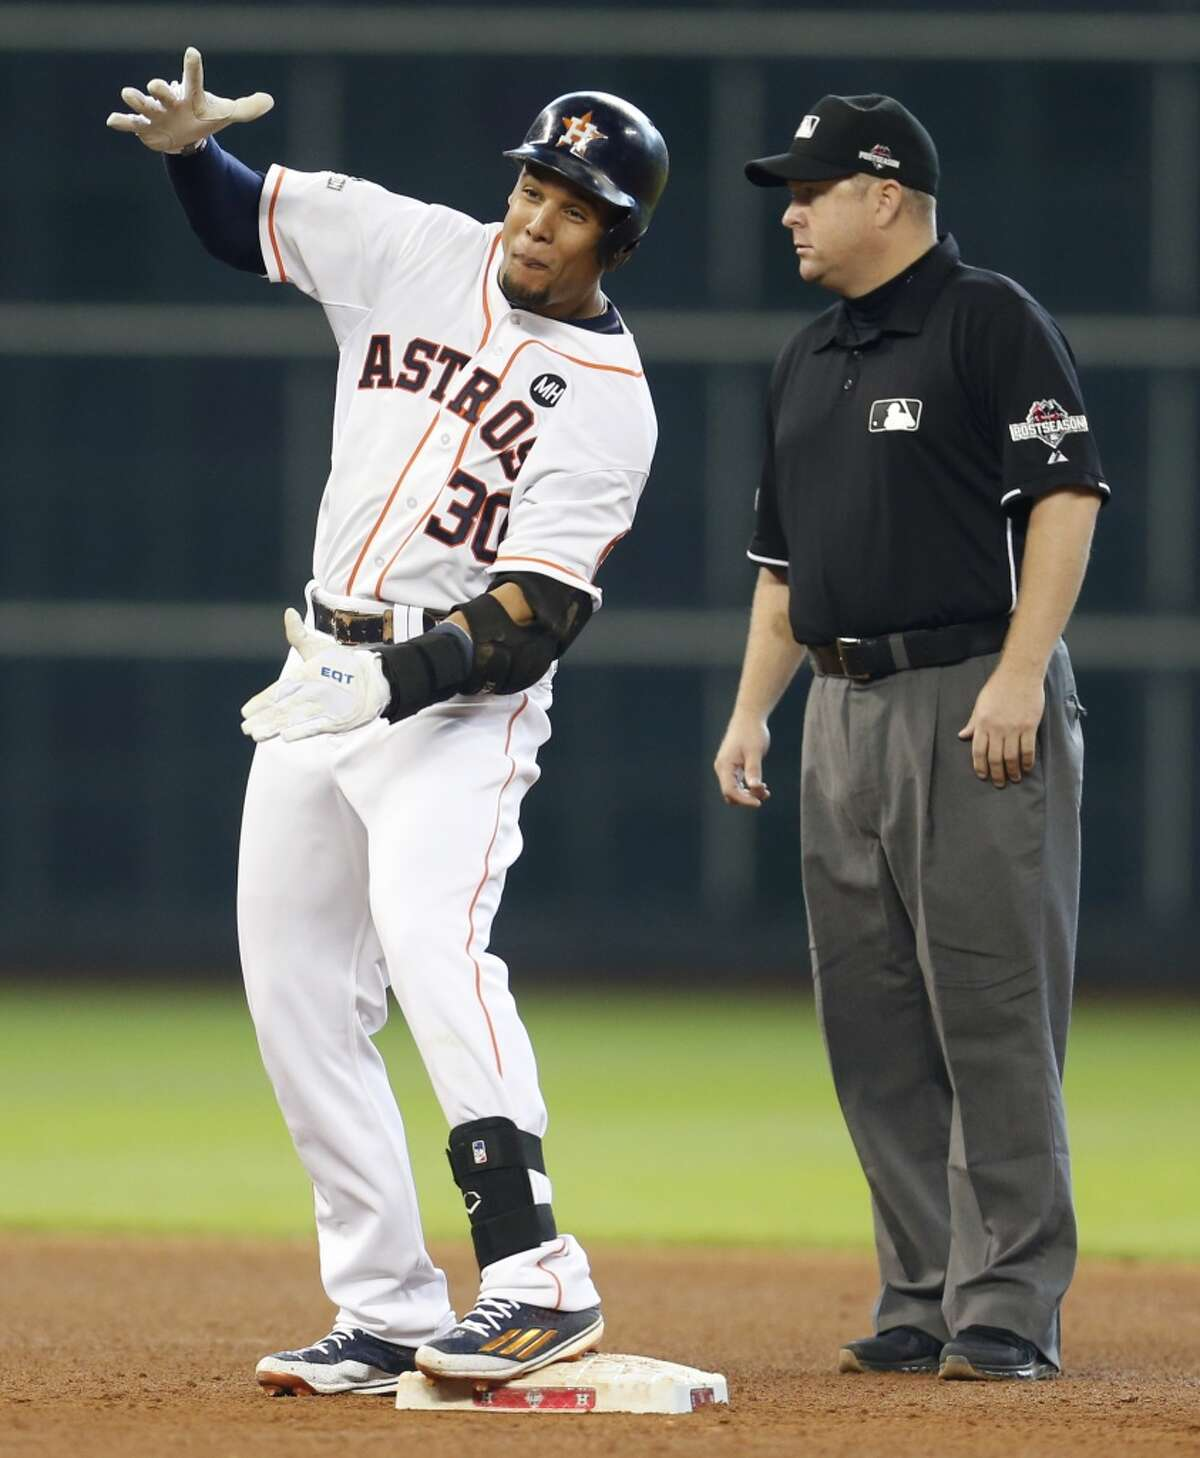 Houston Astros center fielder Carlos Gomez (30) reacts at second base after singling and going to second on a throw during the seventh inning of Game 4 of the American League Division Series against the Kansas City Royals at Minute Maid Park on Monday, Oct. 12, 2015, in Houston. ( Karen Warren / Houston Chronicle )